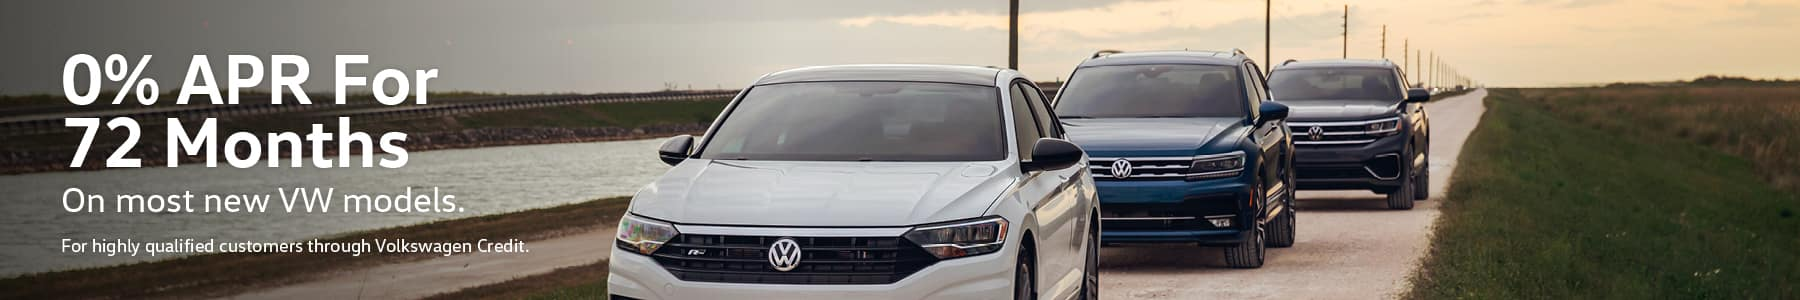 0% APR, no down payment required. Available on new, unused 2020 Tiguan, 2020 Jetta, 2020 Jetta GLI, 2020 Passat, 2020 Golf GTI, 2019 Golf SportWagen,  2019 Golf Alltrack, 2020 Golf ALL, 2019 Beetle, 2019 Golf R, 2020 Arteon, models financed by Volkswagen Credit through participating dealers only. Example: For 0% APR, monthly payment for every $1,000 you finance for 72 months is $13.89. Available on new, unused 2020 Atlas Cross Sport models financed by Volkswagen Credit through participating dealers only. Example: For 0% APR, monthly payment for every $1,000 you finance for 60 months is $16.67. Available on new, unused 2021 Atlas models financed by Volkswagen Credit through participating dealers only. Example: For 2.9% APR, monthly payment for every $1,000 you finance for 60 months is $17.92. Not all customers will qualify for credit approval or advertised APR. Offer ends November 2, 2020.